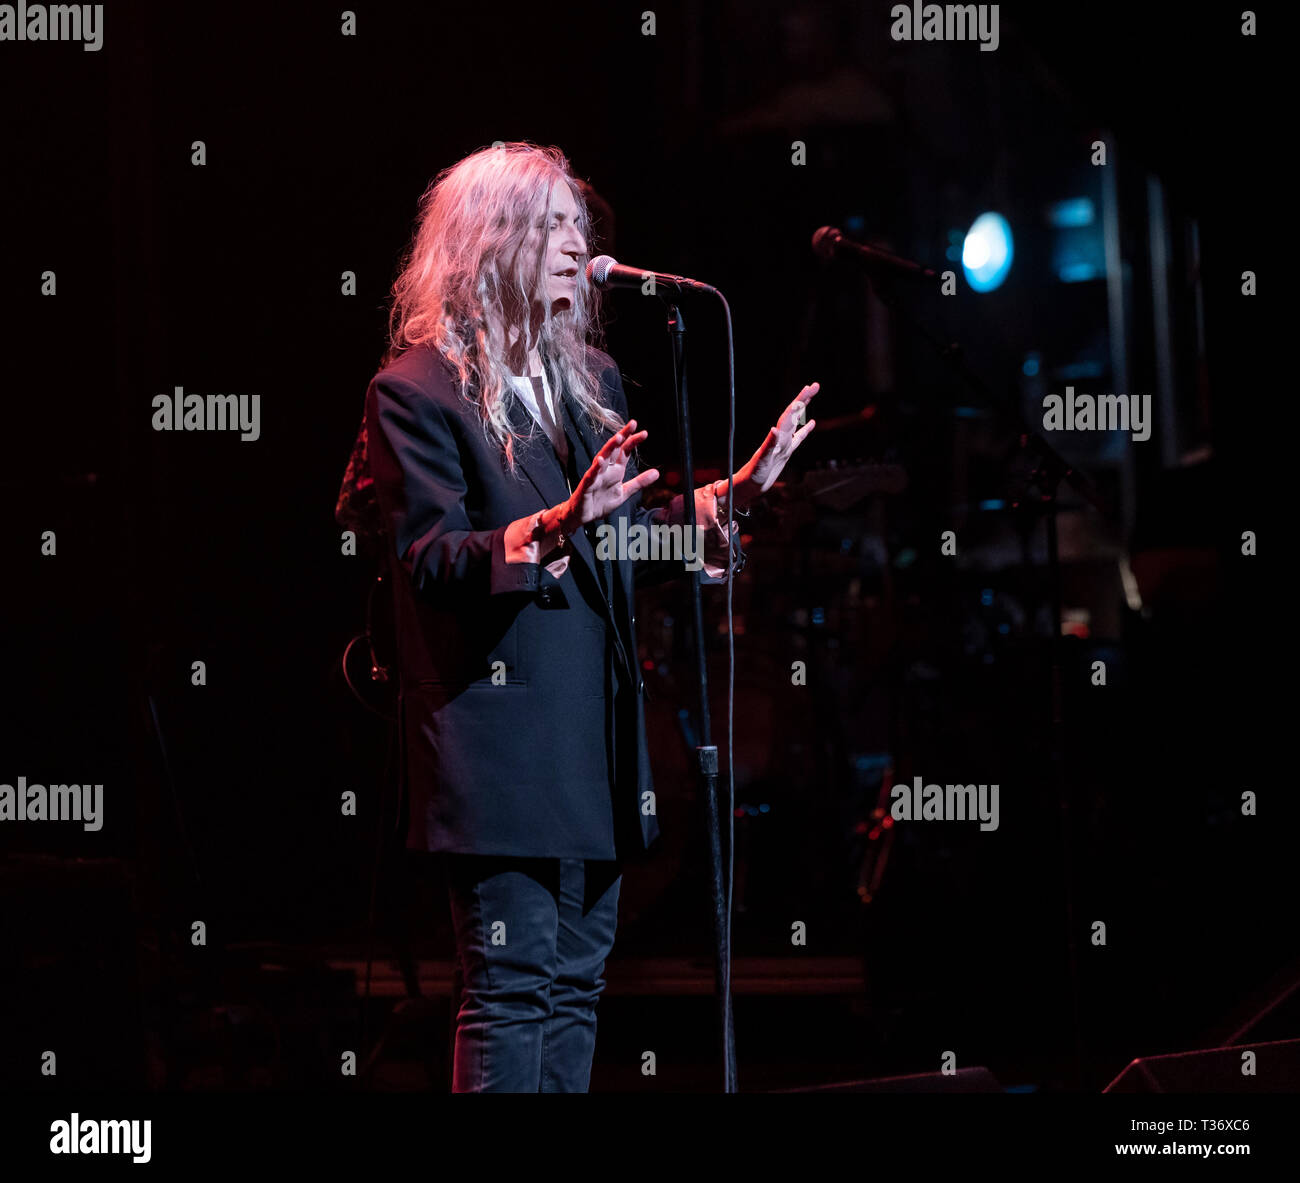 New York, NY - April 4, 2019: Patti Smith performs on stage